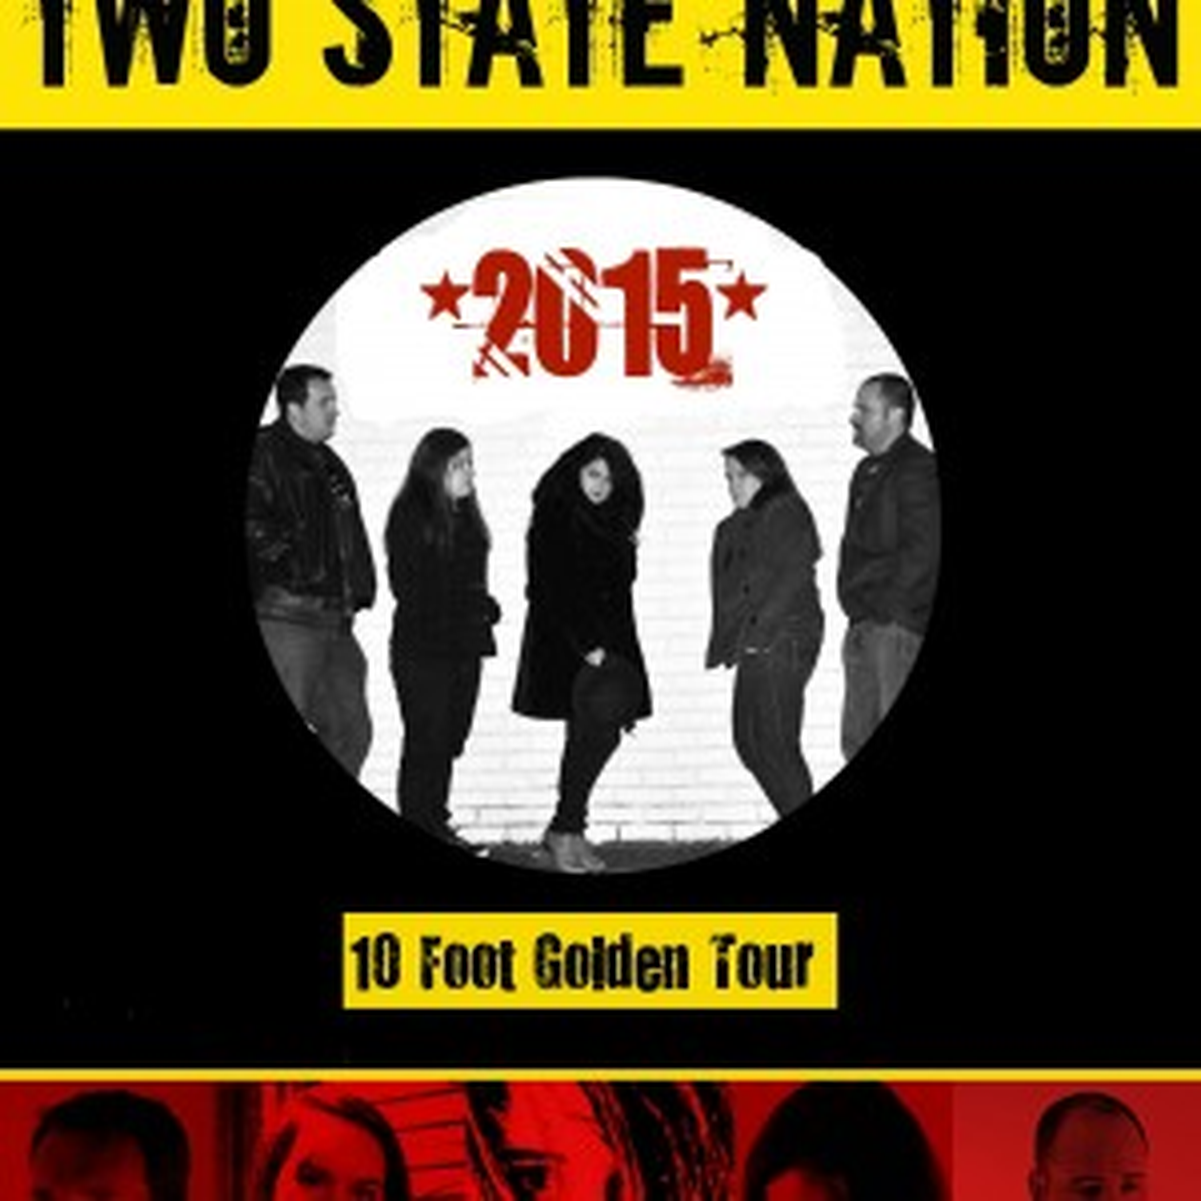 Two State Nation